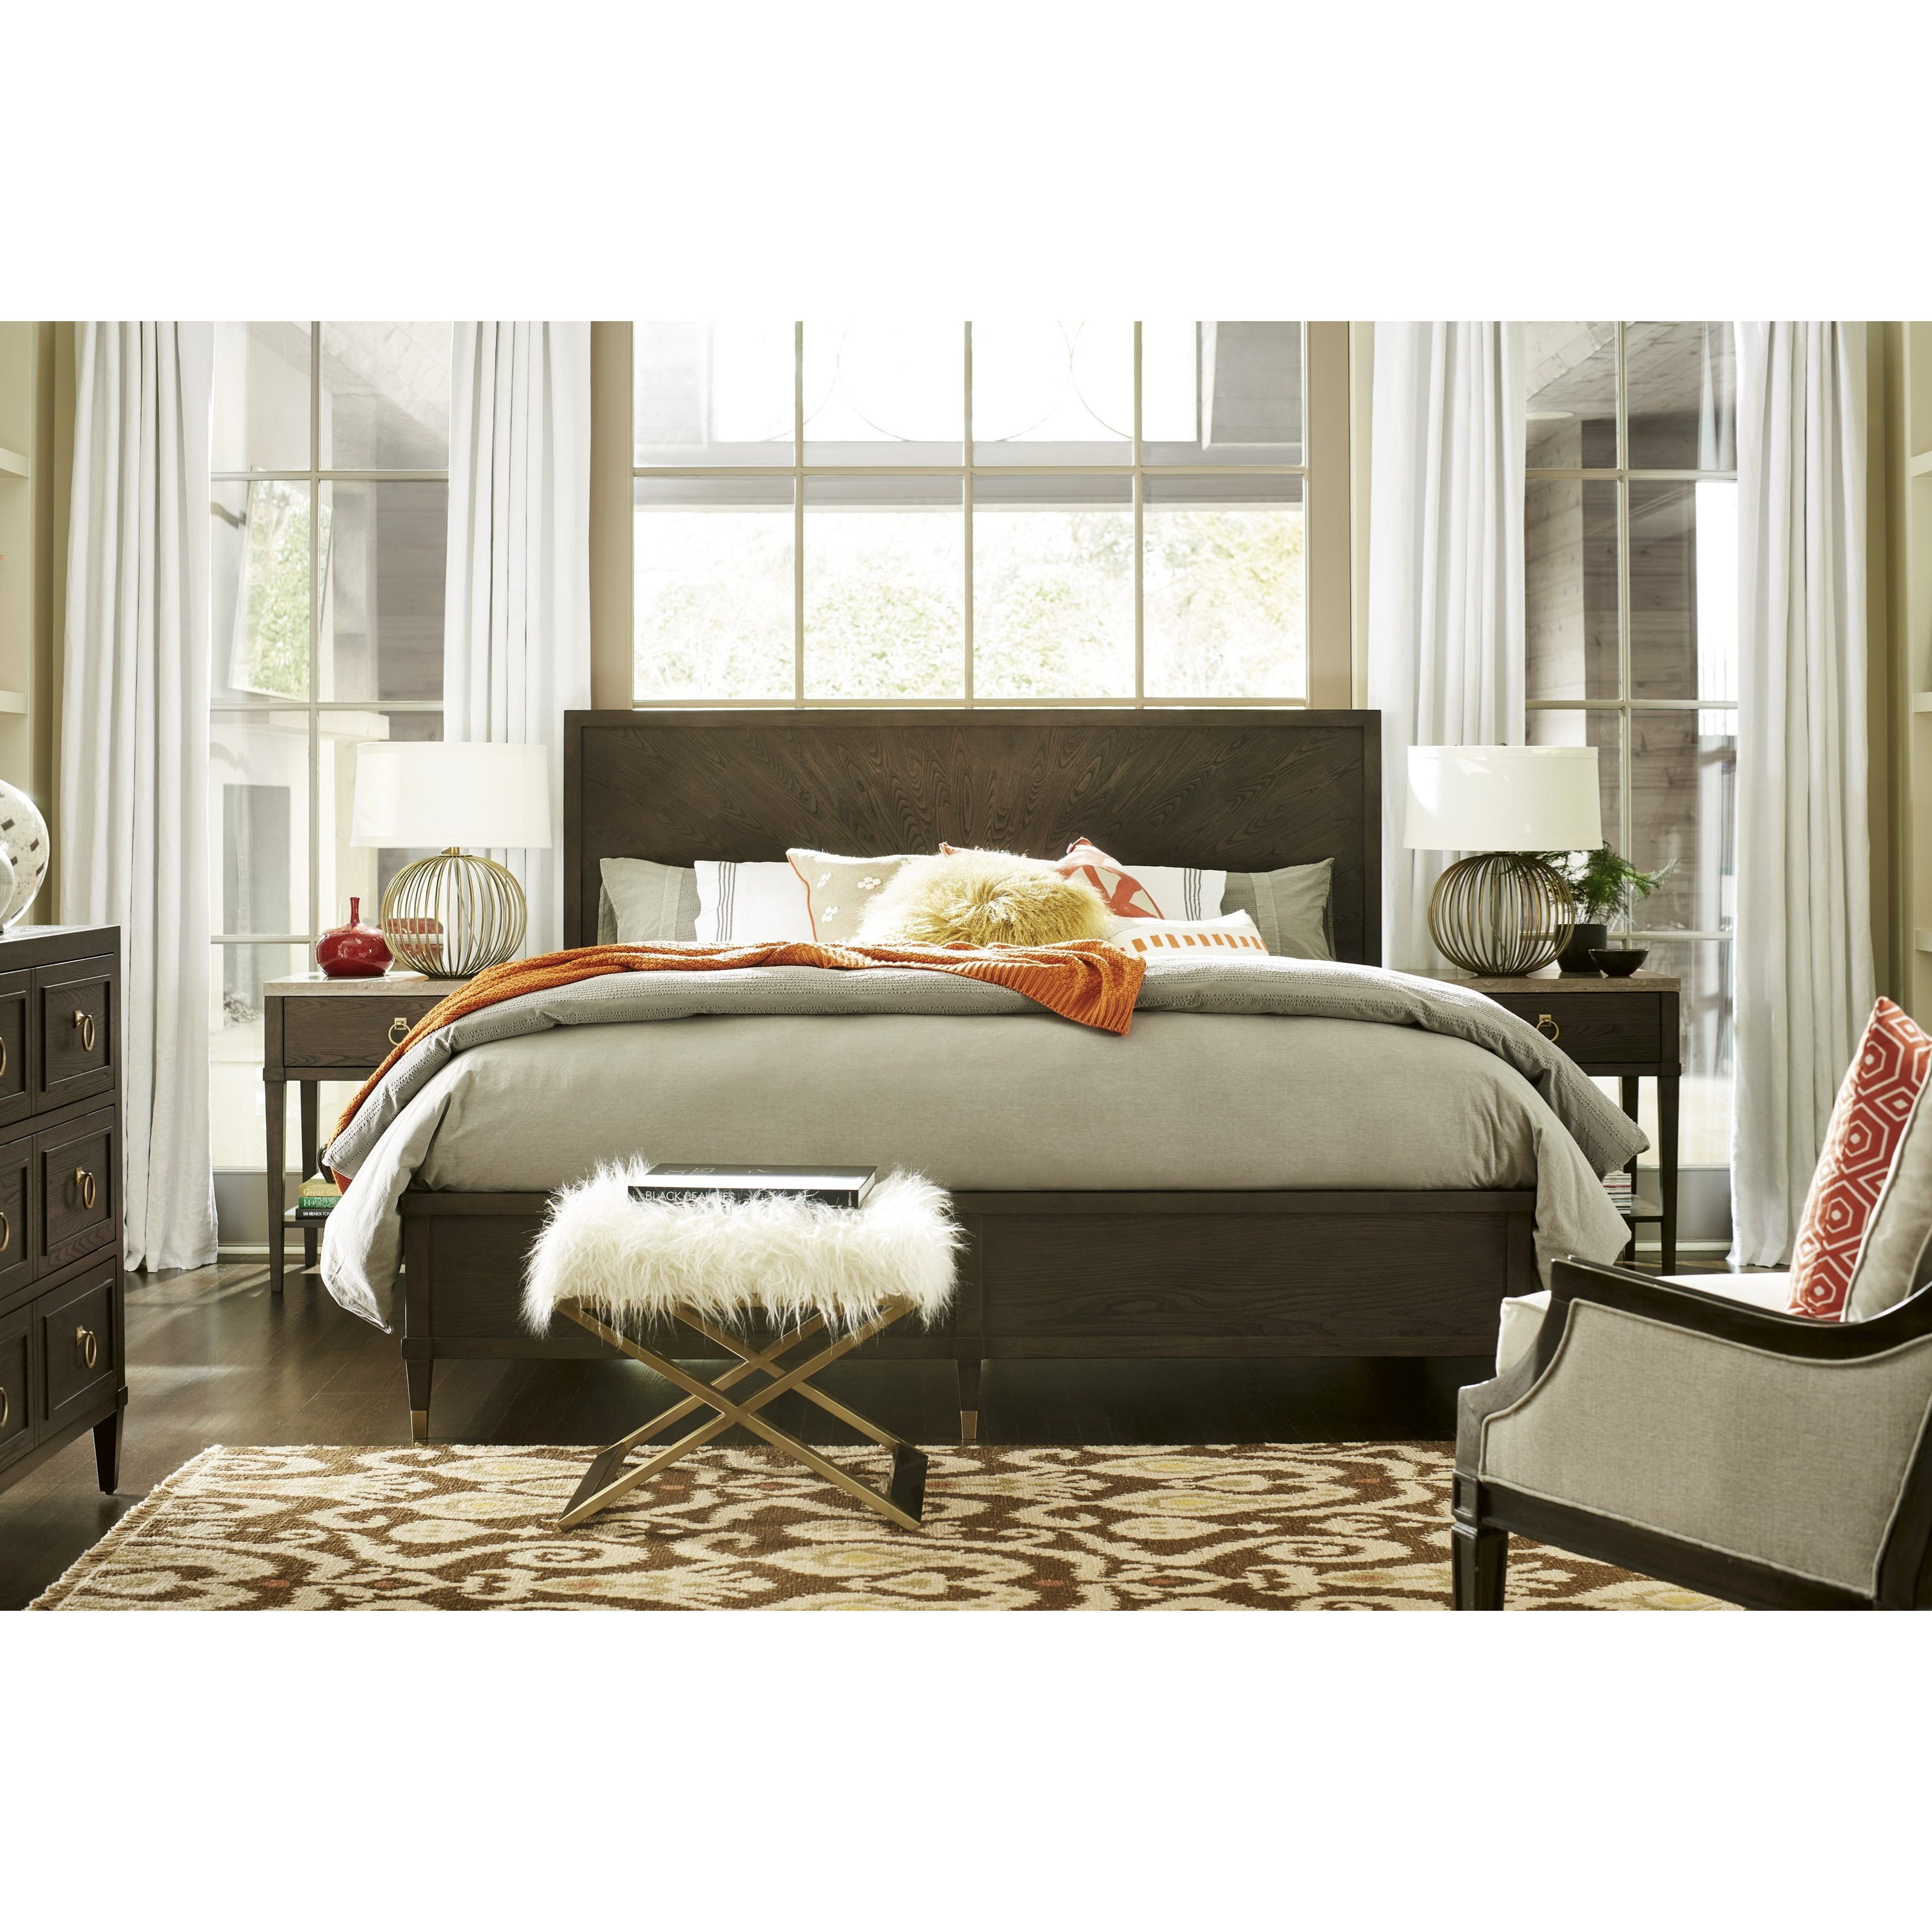 Soliloquy Queen Bedroom Group by Universal at Baer's Furniture